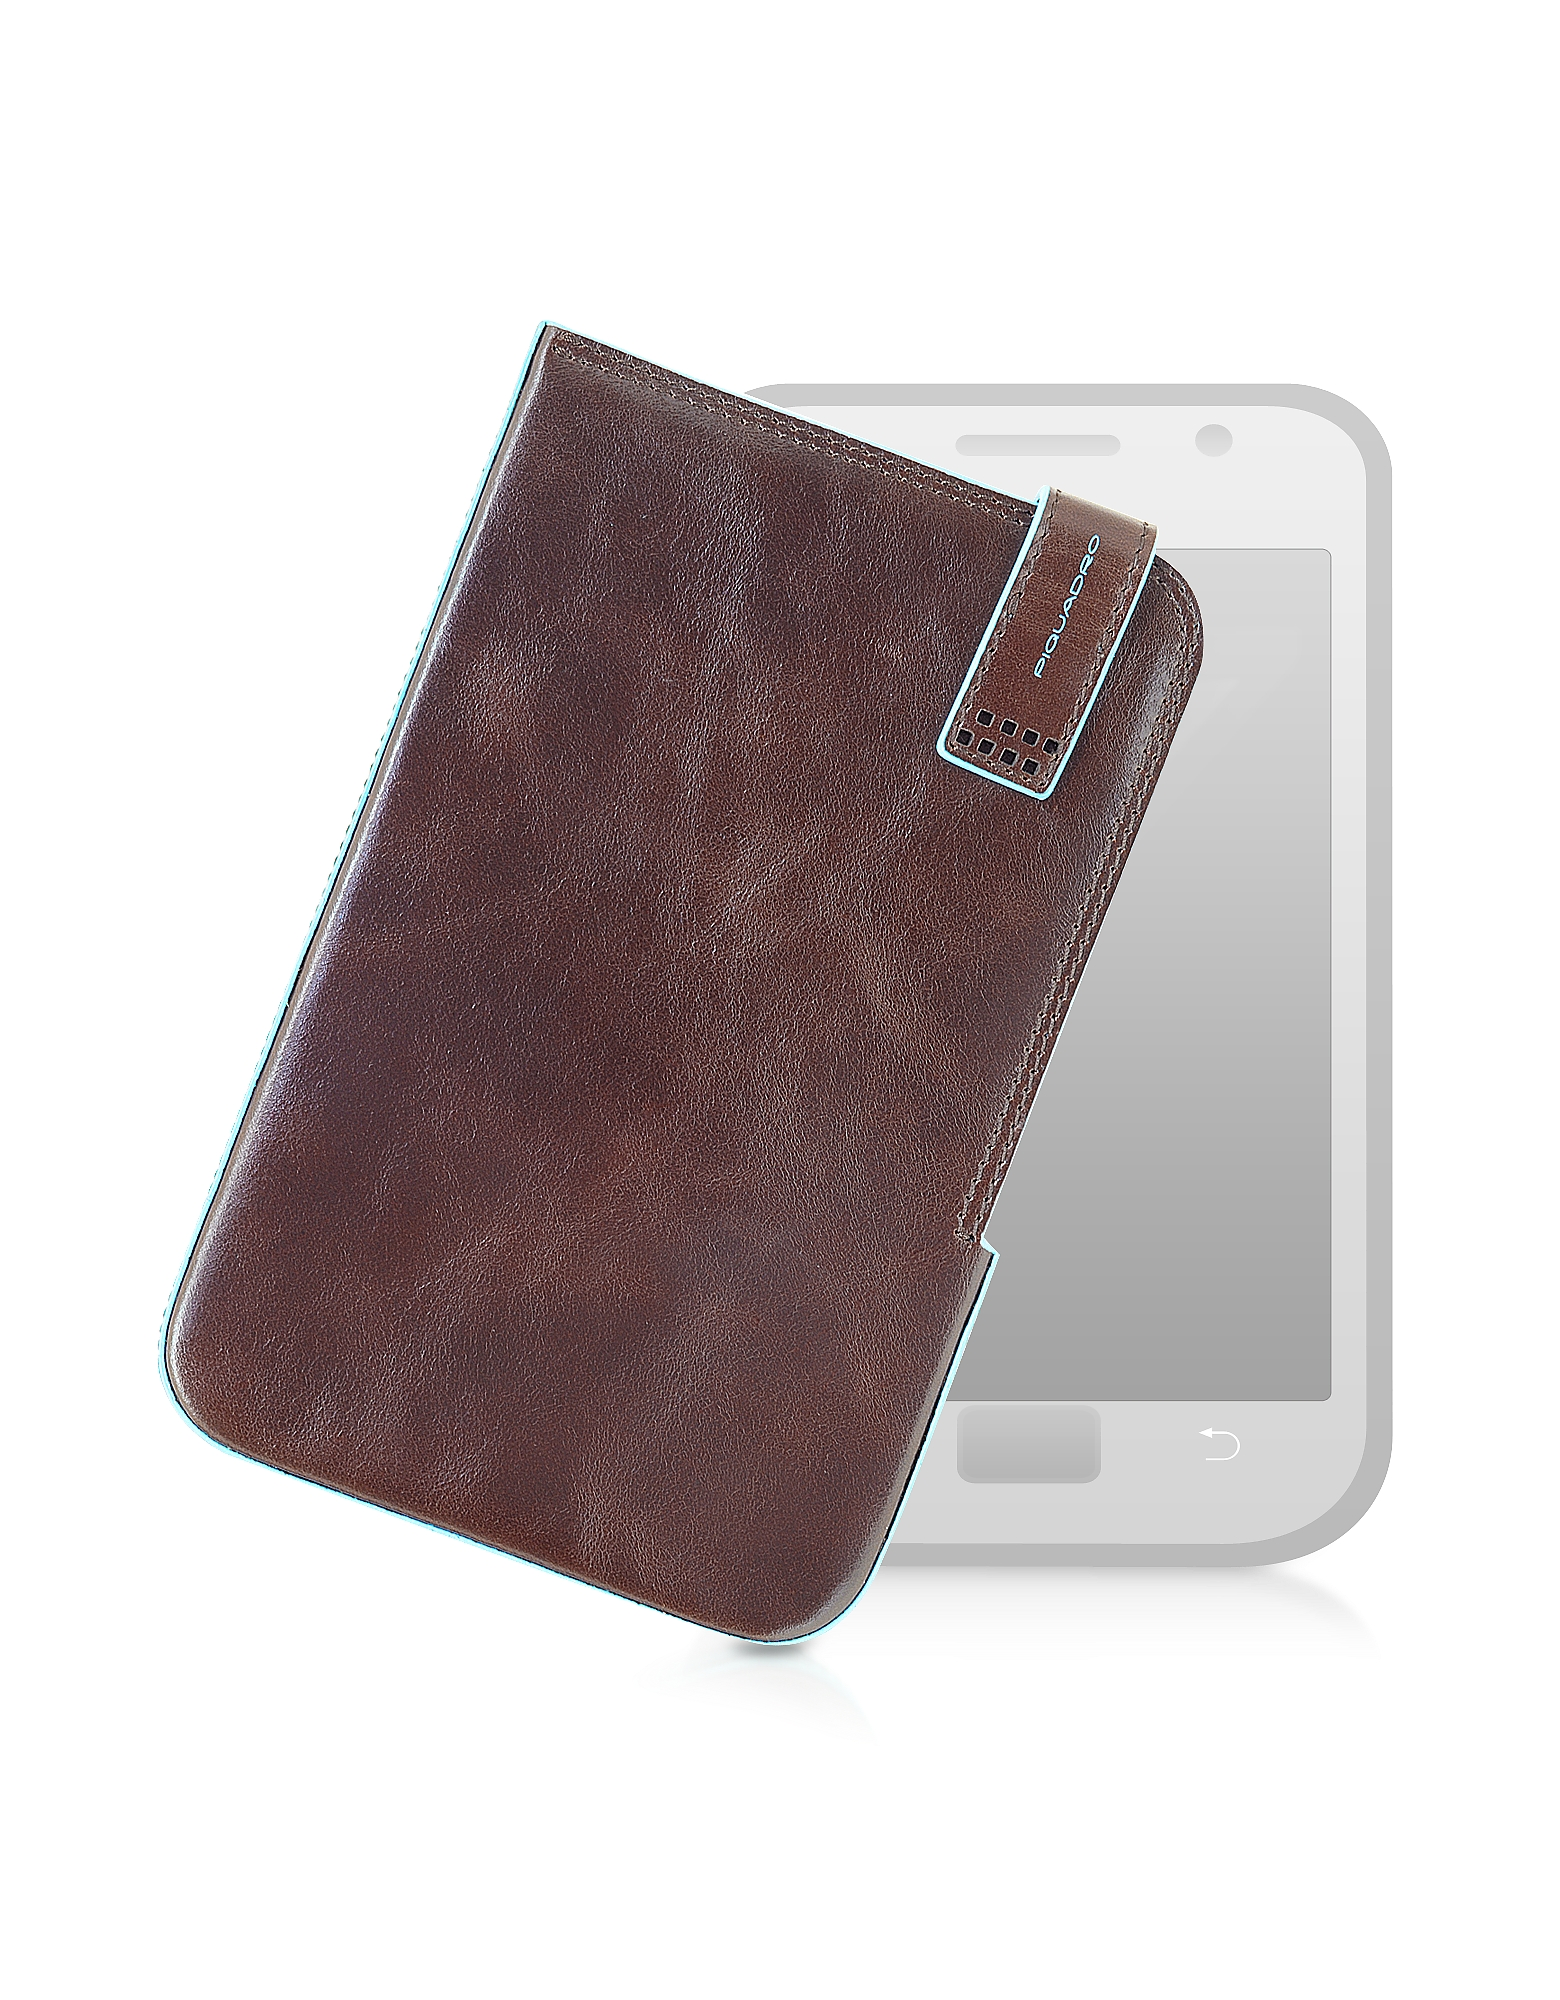 Image of Piquadro Designer Small Leather Goods, Leather Tablet Case